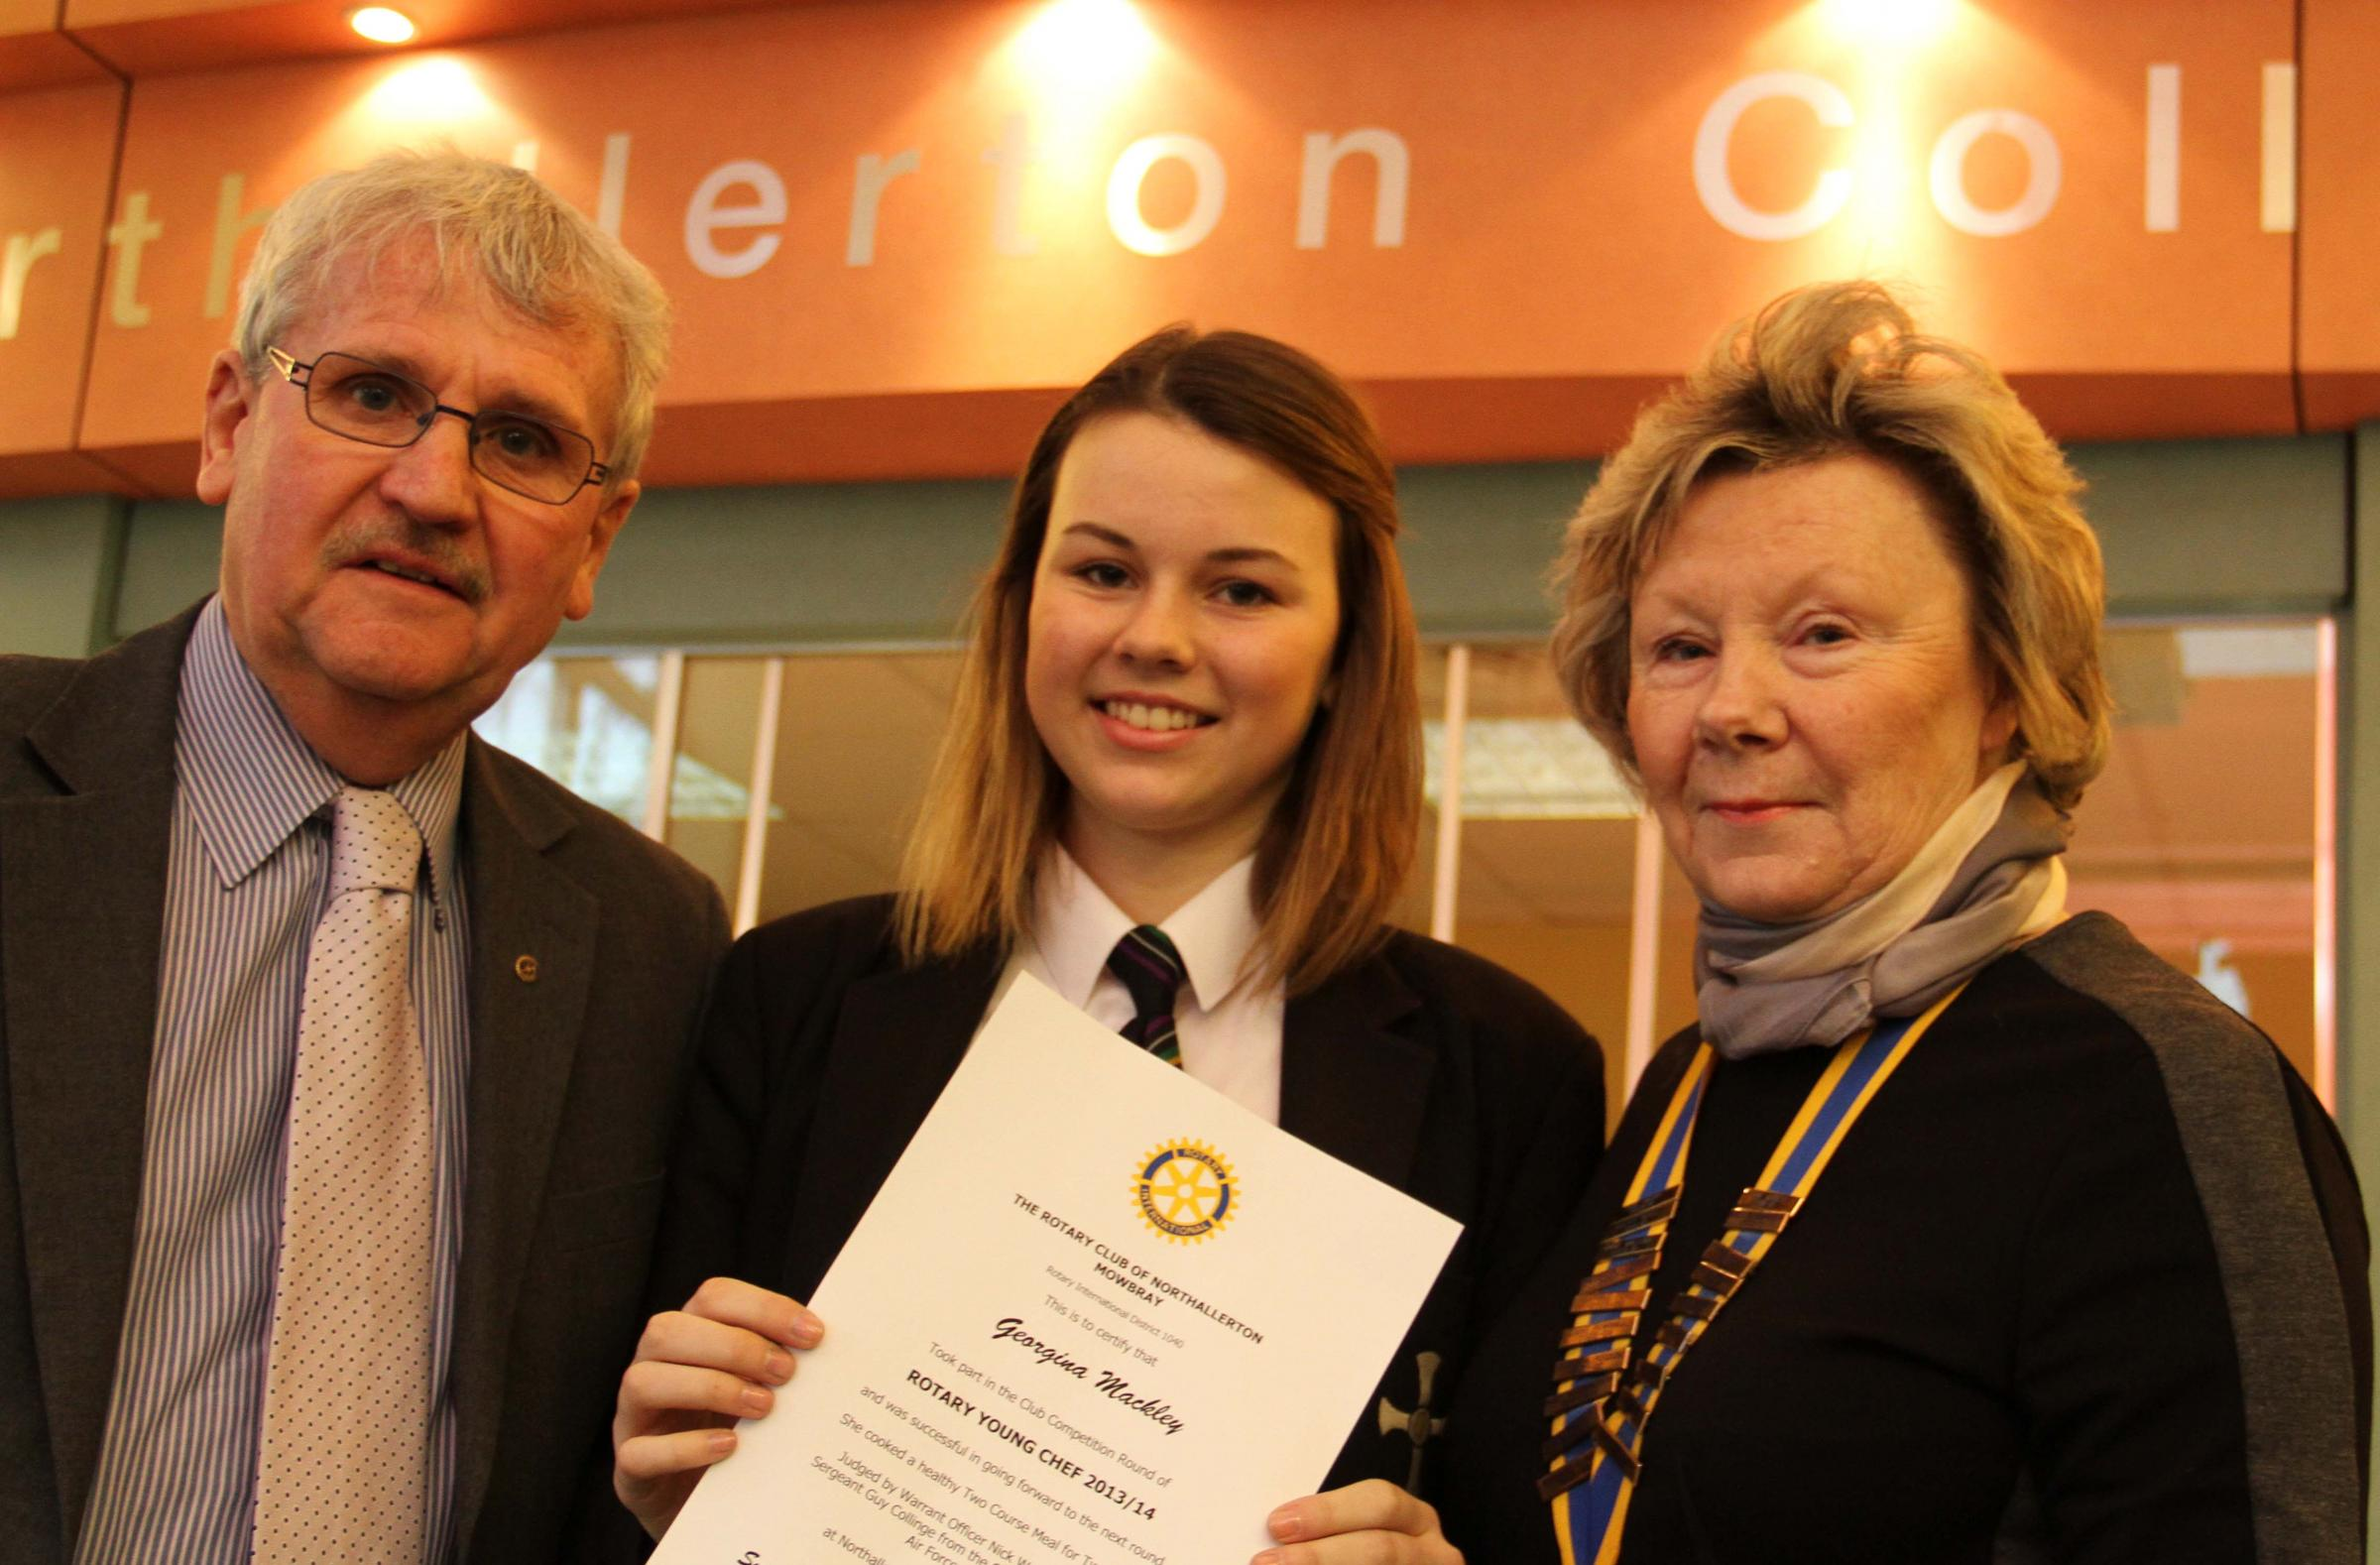 Northallerton College student Georgina Mackley is presented with a Rotary Club award for her efforts by governor Kevin Hardisty and Northallerton and Mowbray pres